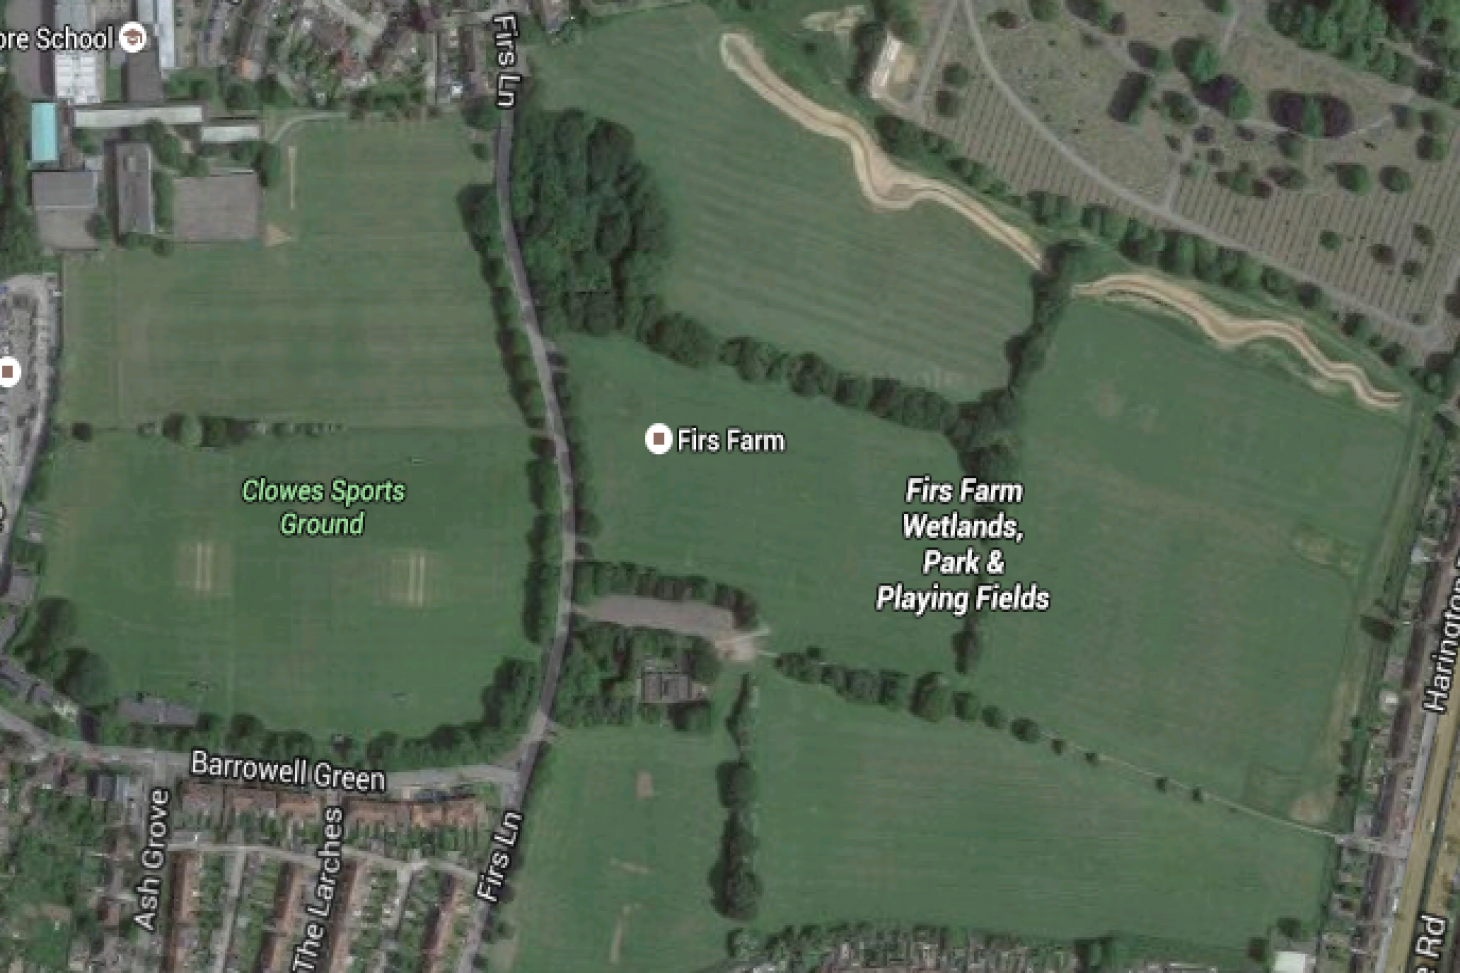 Firs Farm 11 a side | Grass football pitch